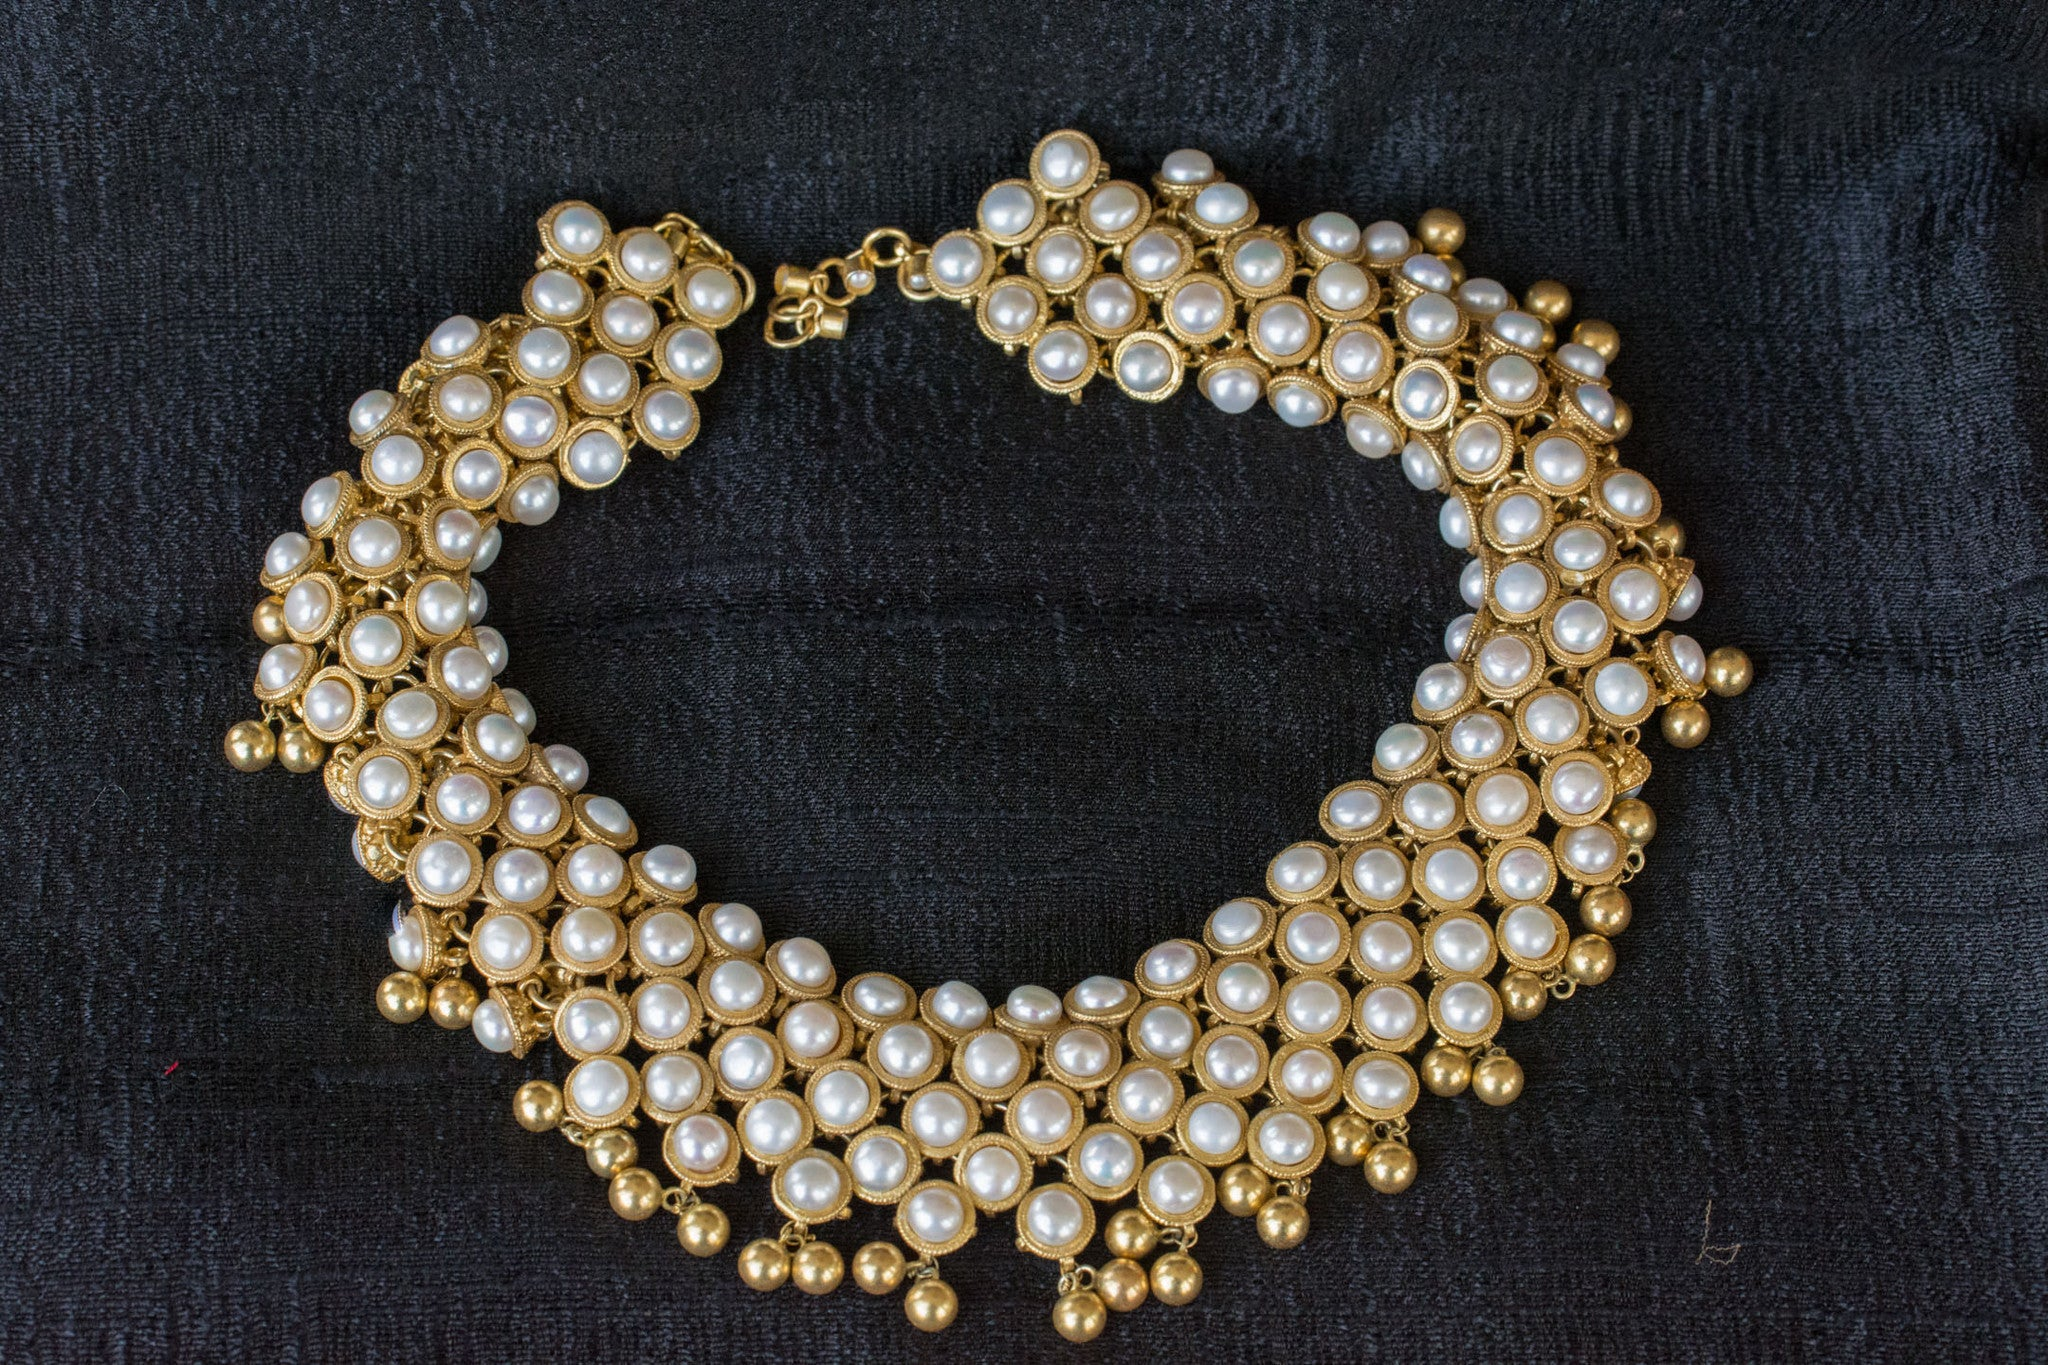 20a548-silver-gold-plated-amrapali-necklace-pearl